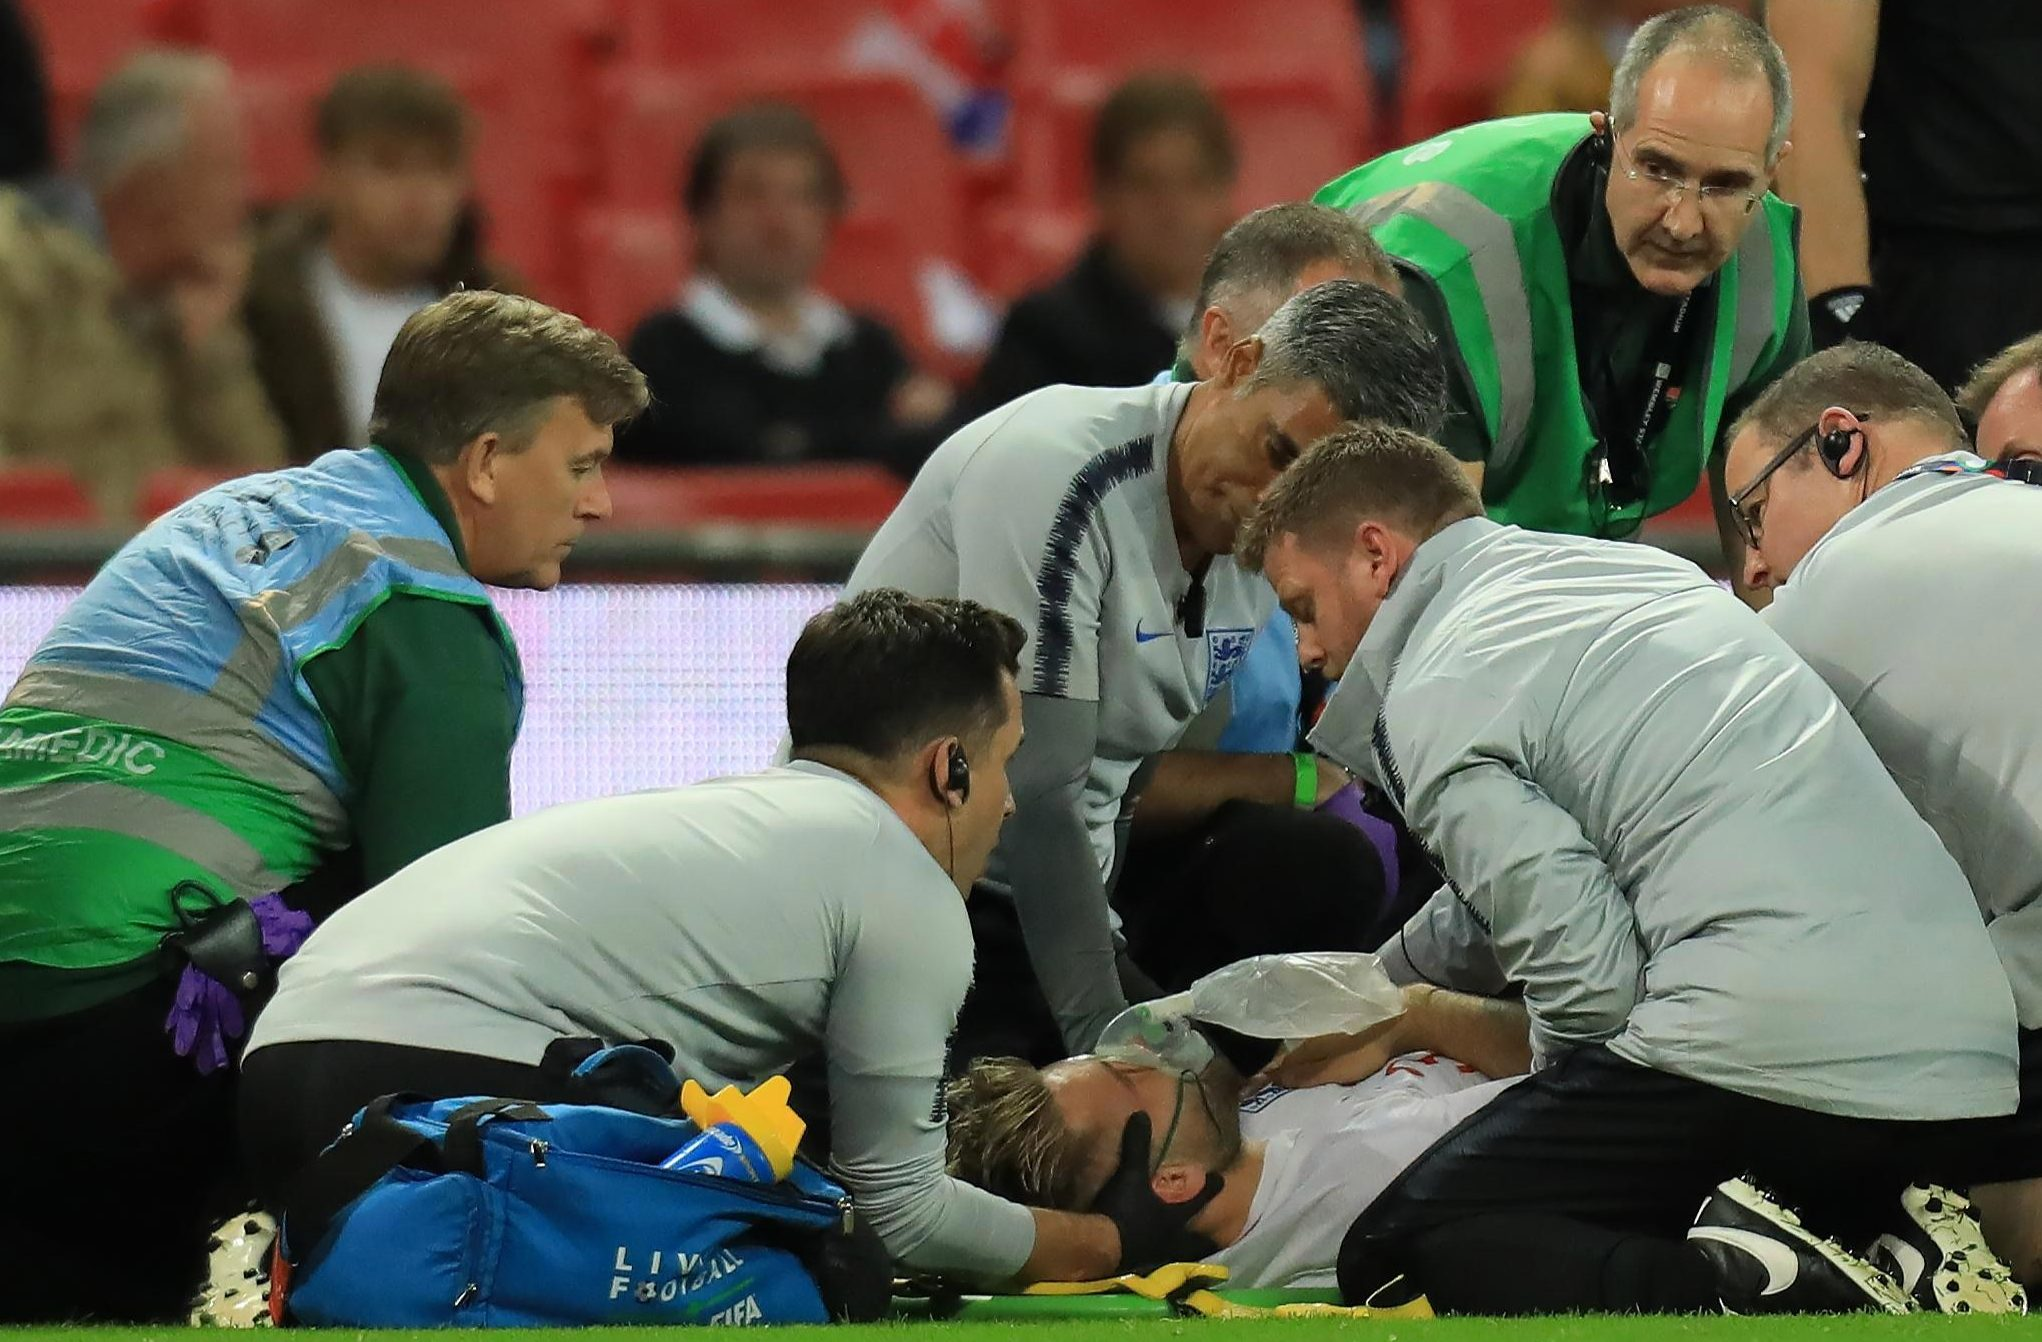 Medics spent many minutes stabilising Luke Shaw at Wembley after his fall